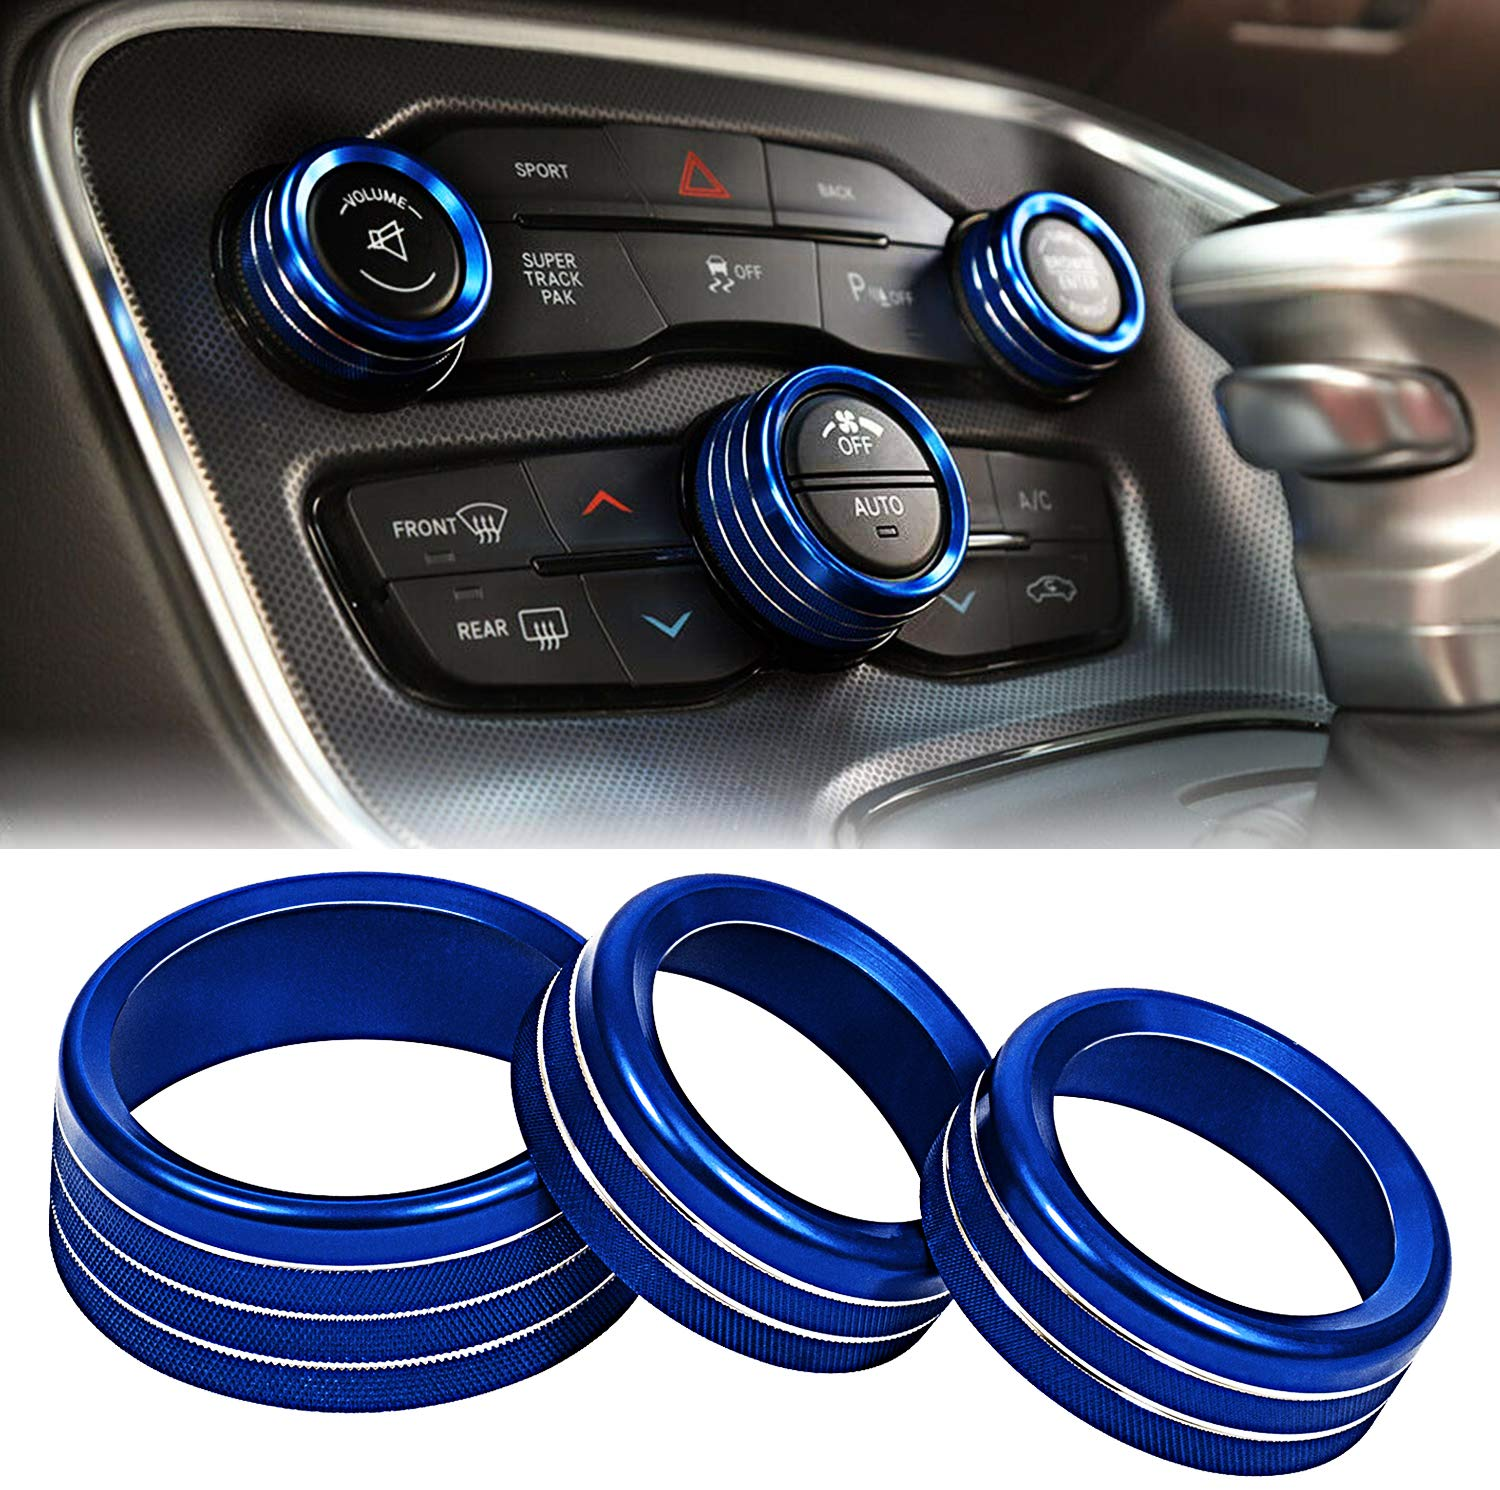 Toolepic For Dodge Challenger Charger Accessories 2015 2020 Decal Trim Rings Set Of 3 Aluminum Alloy Indigo Blue Air Conditioning Volume Radio Button Knob Cover Perfect For Decoration